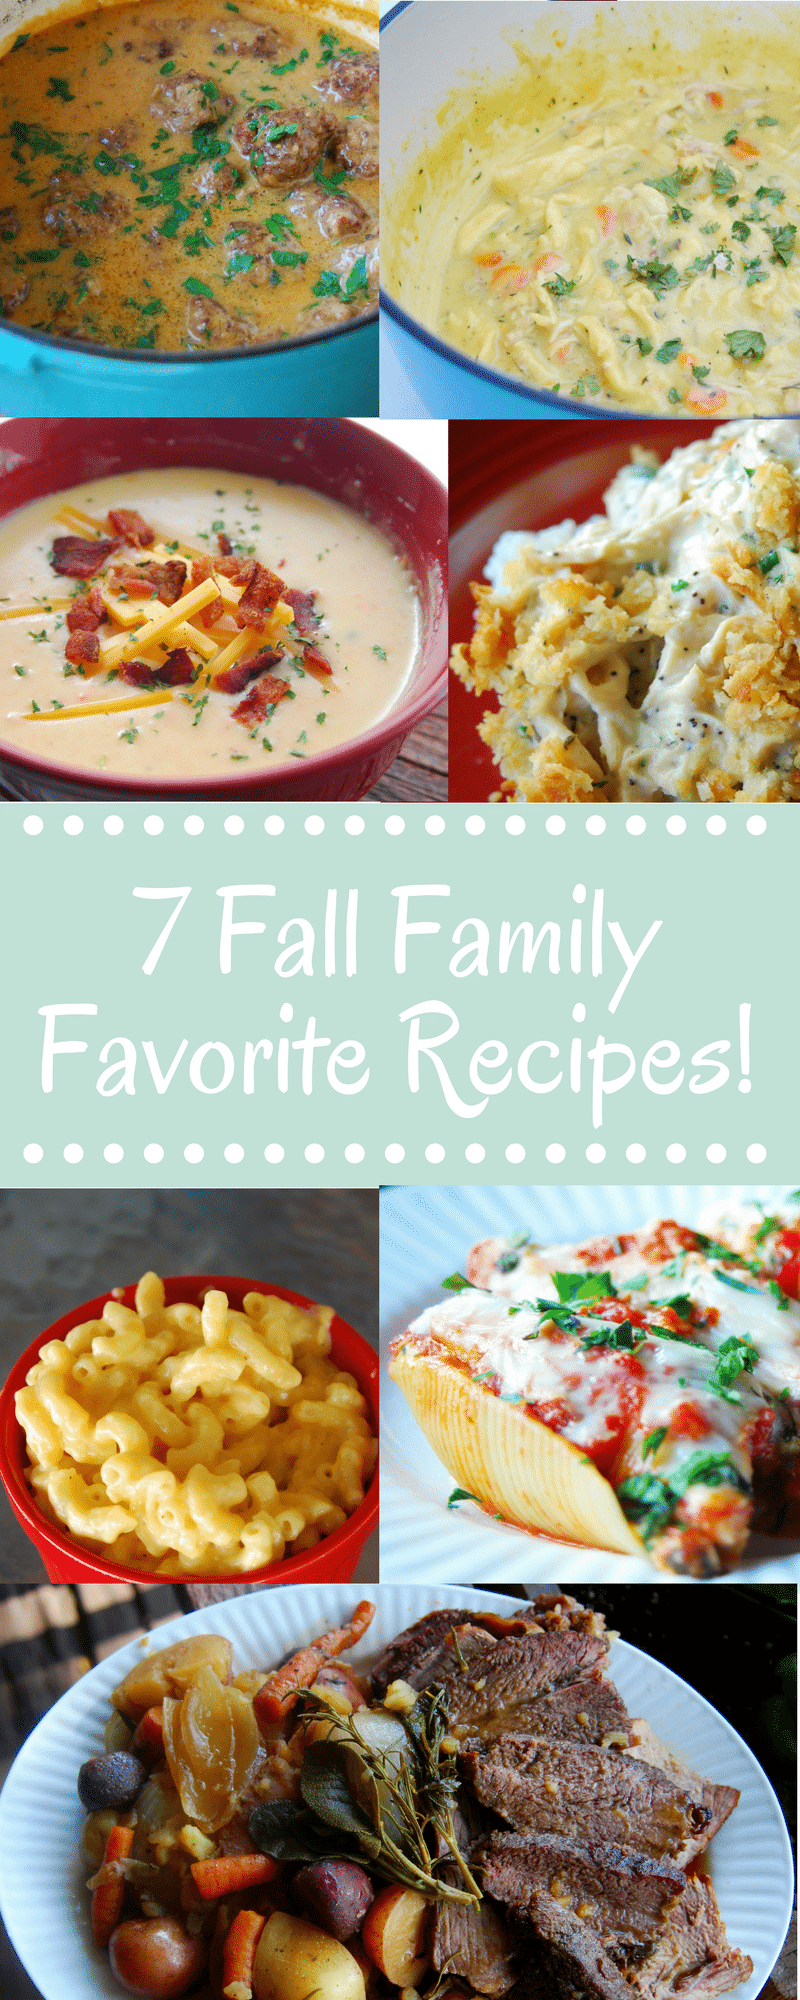 Some of the best fall family dinner recipes! There is everything from soup to pasta, you're sure to find something your whole family will enjoy!